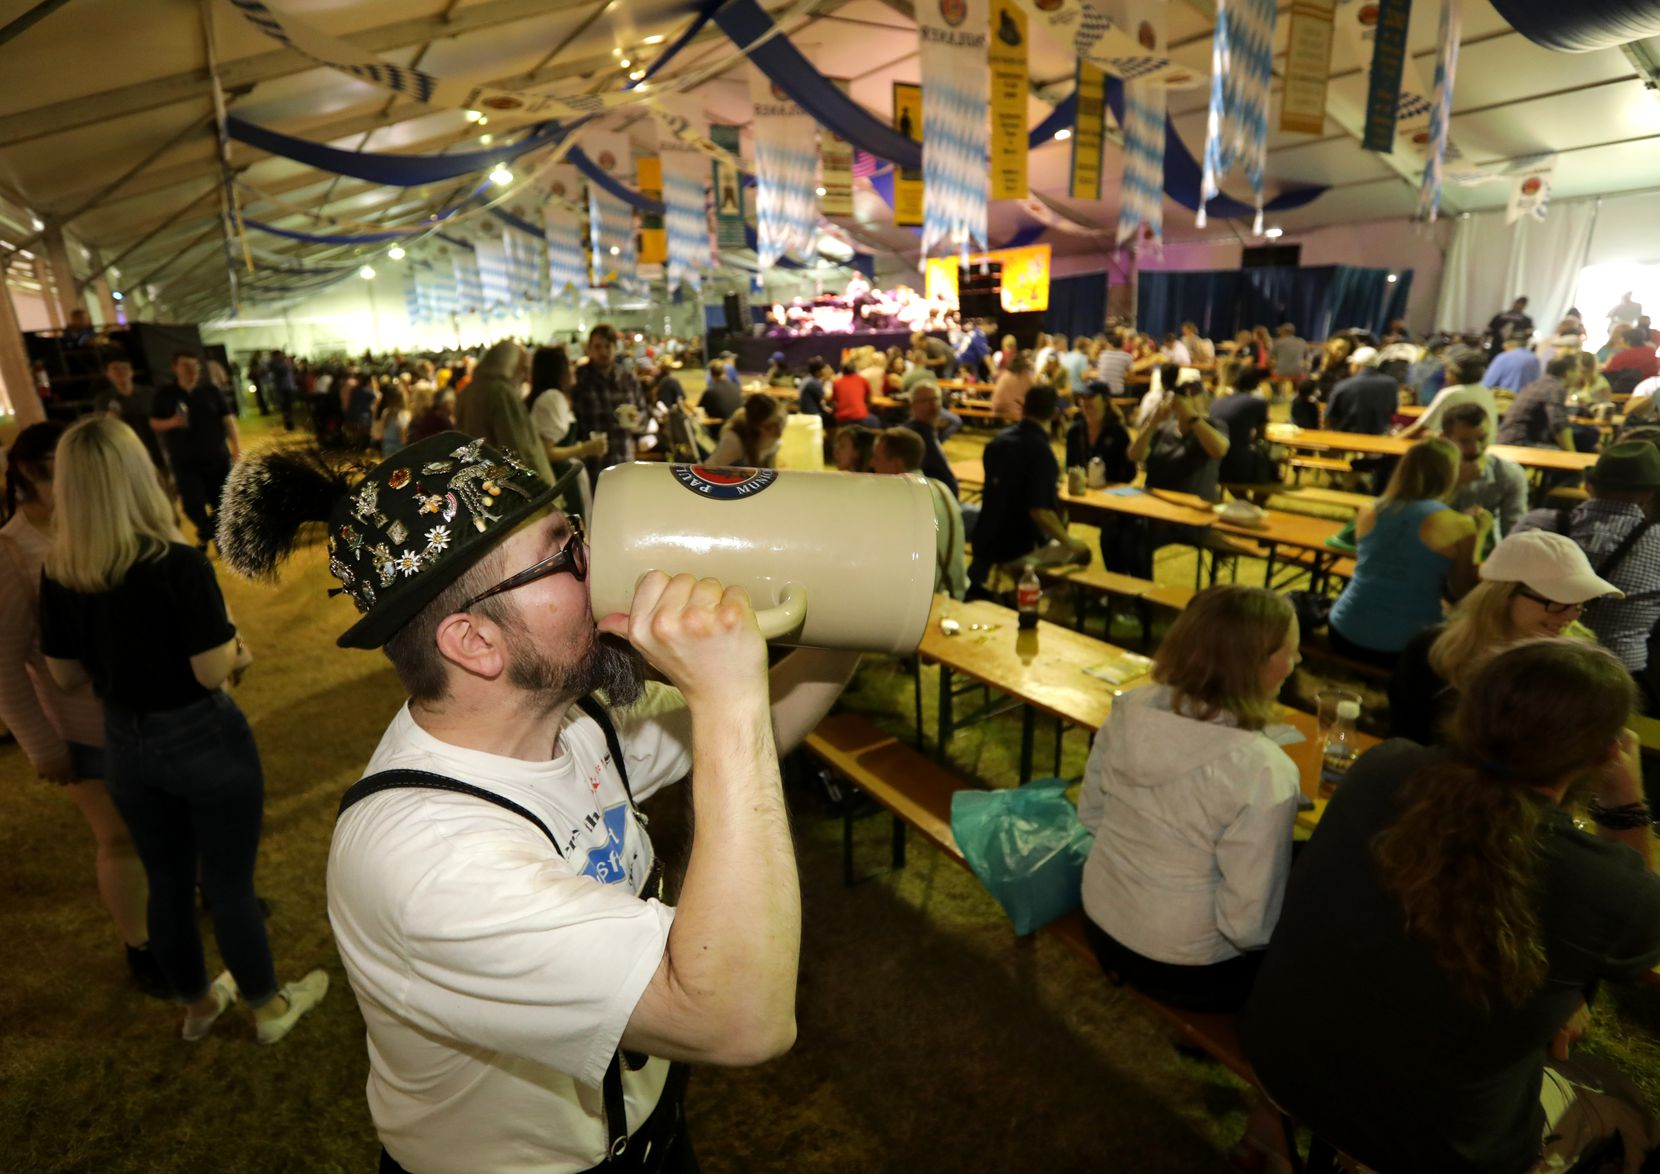 Vinnie Inglhofer drinks from his huge beer stein during the 2018 Addison Octoberfest in Addison.